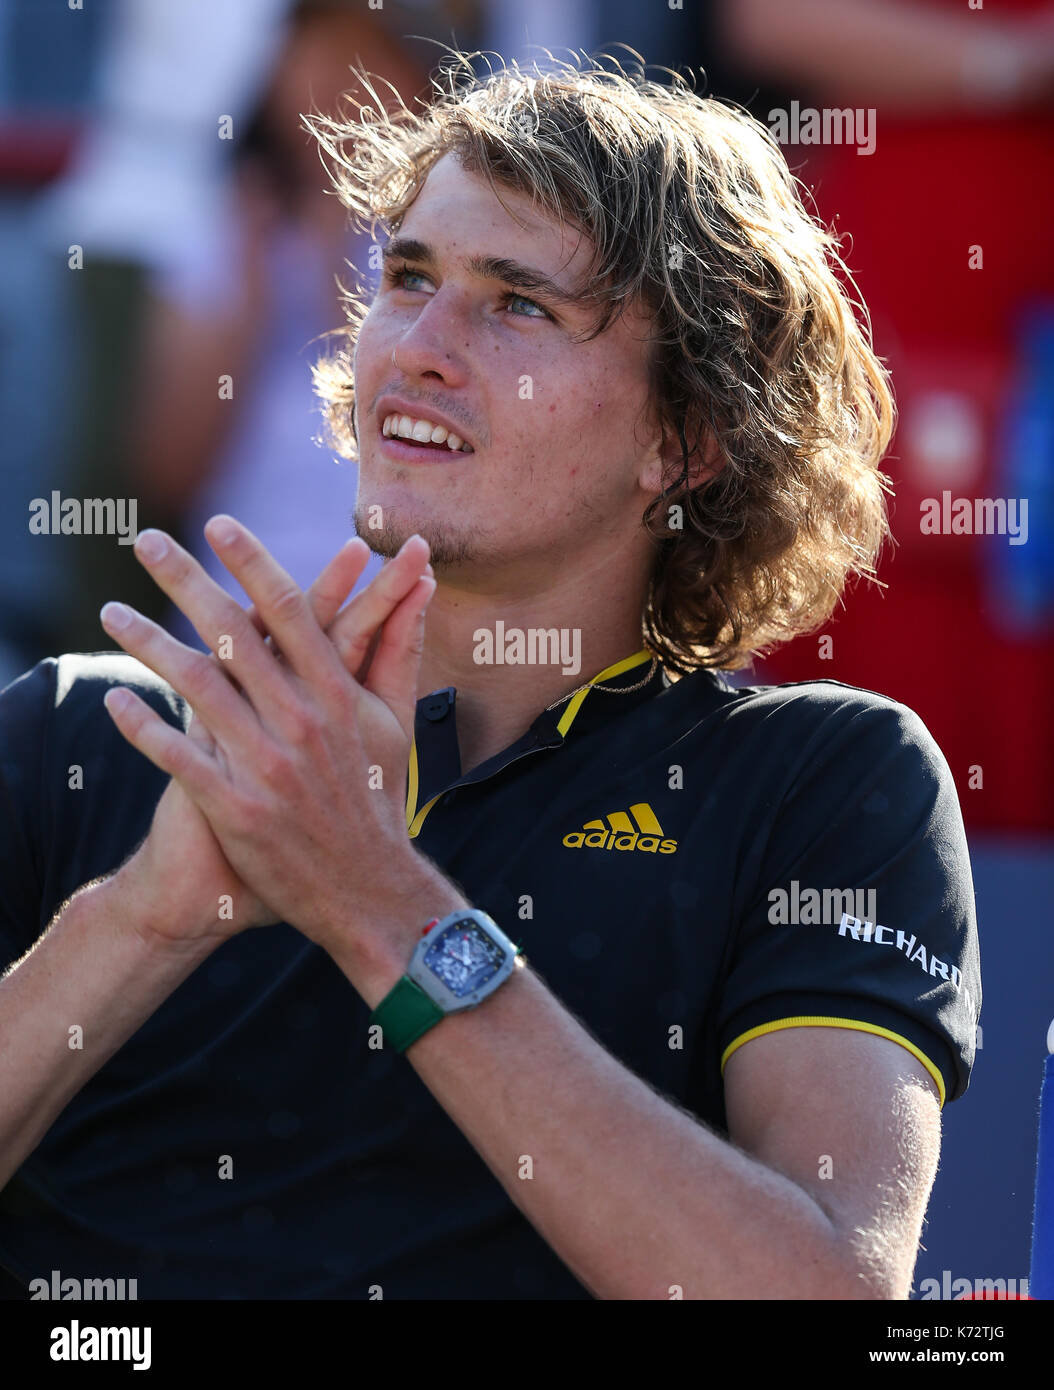 alexander singles Alexander zverev and mischa zverev upset top seeds oliver marach and mate pavic in washington, dc on thursday right after playing one another in singles peter staples/citi open.